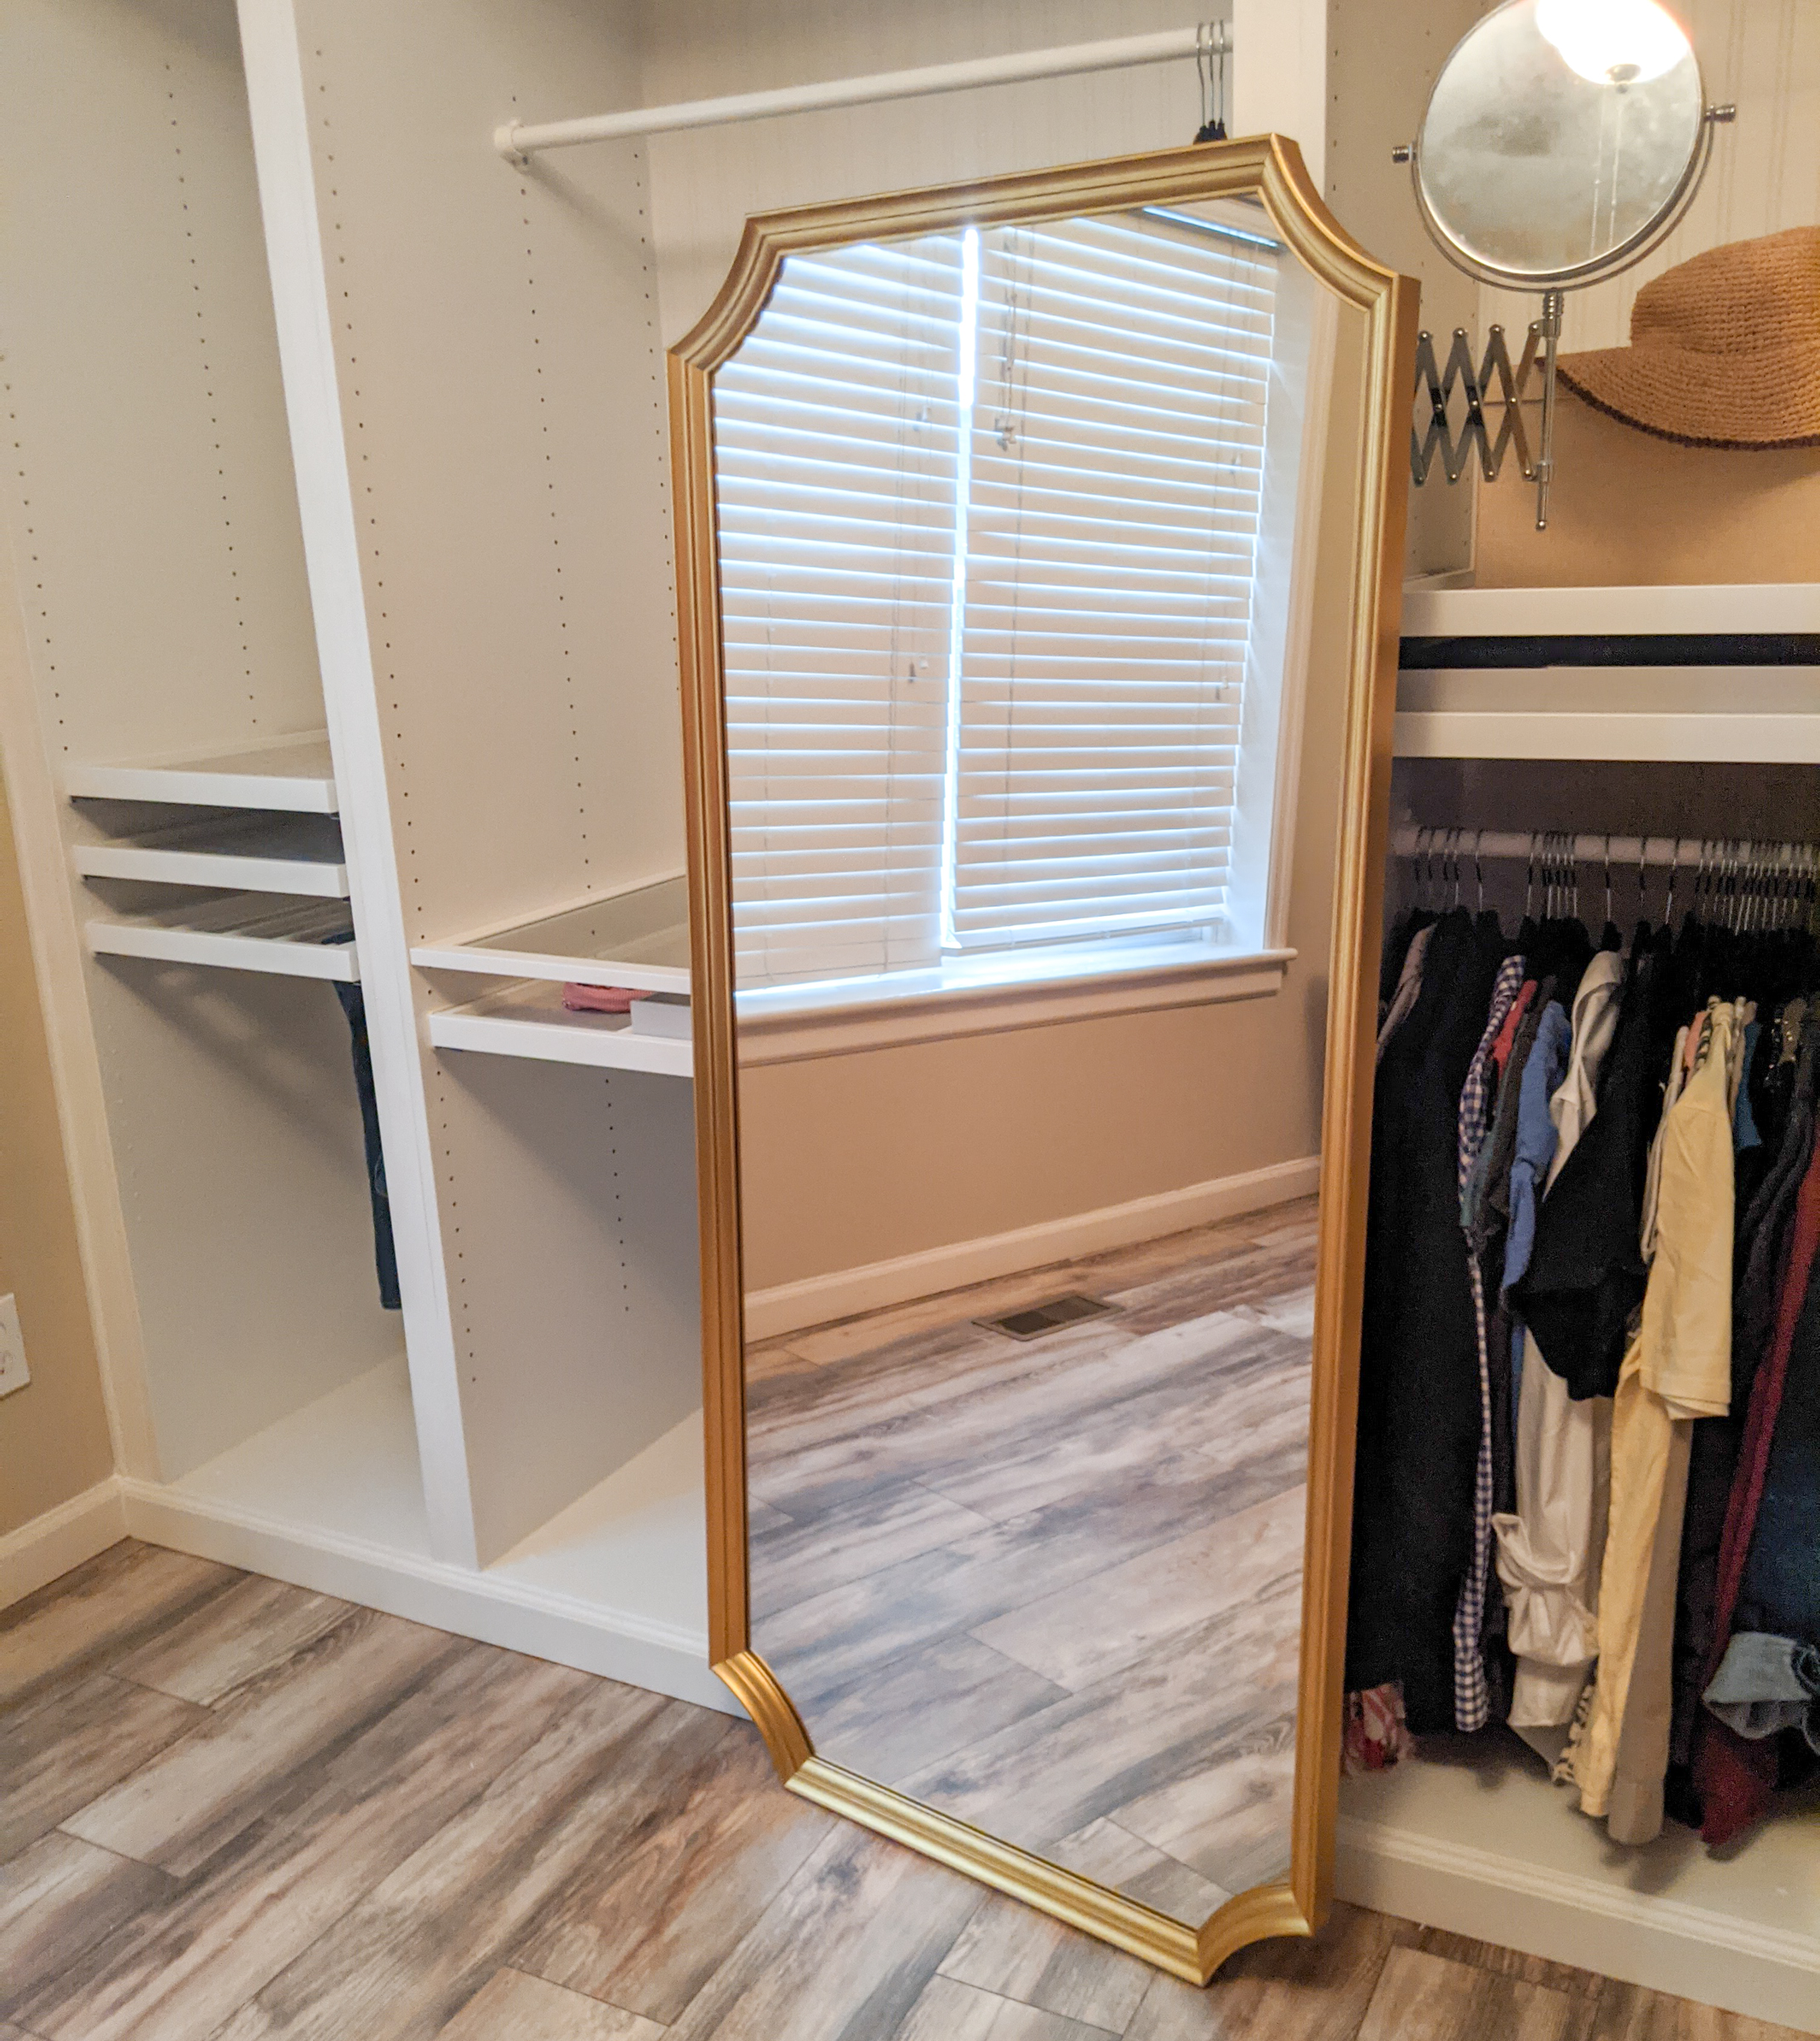 A large gold framed mirror in front of a half filled wardrobe.